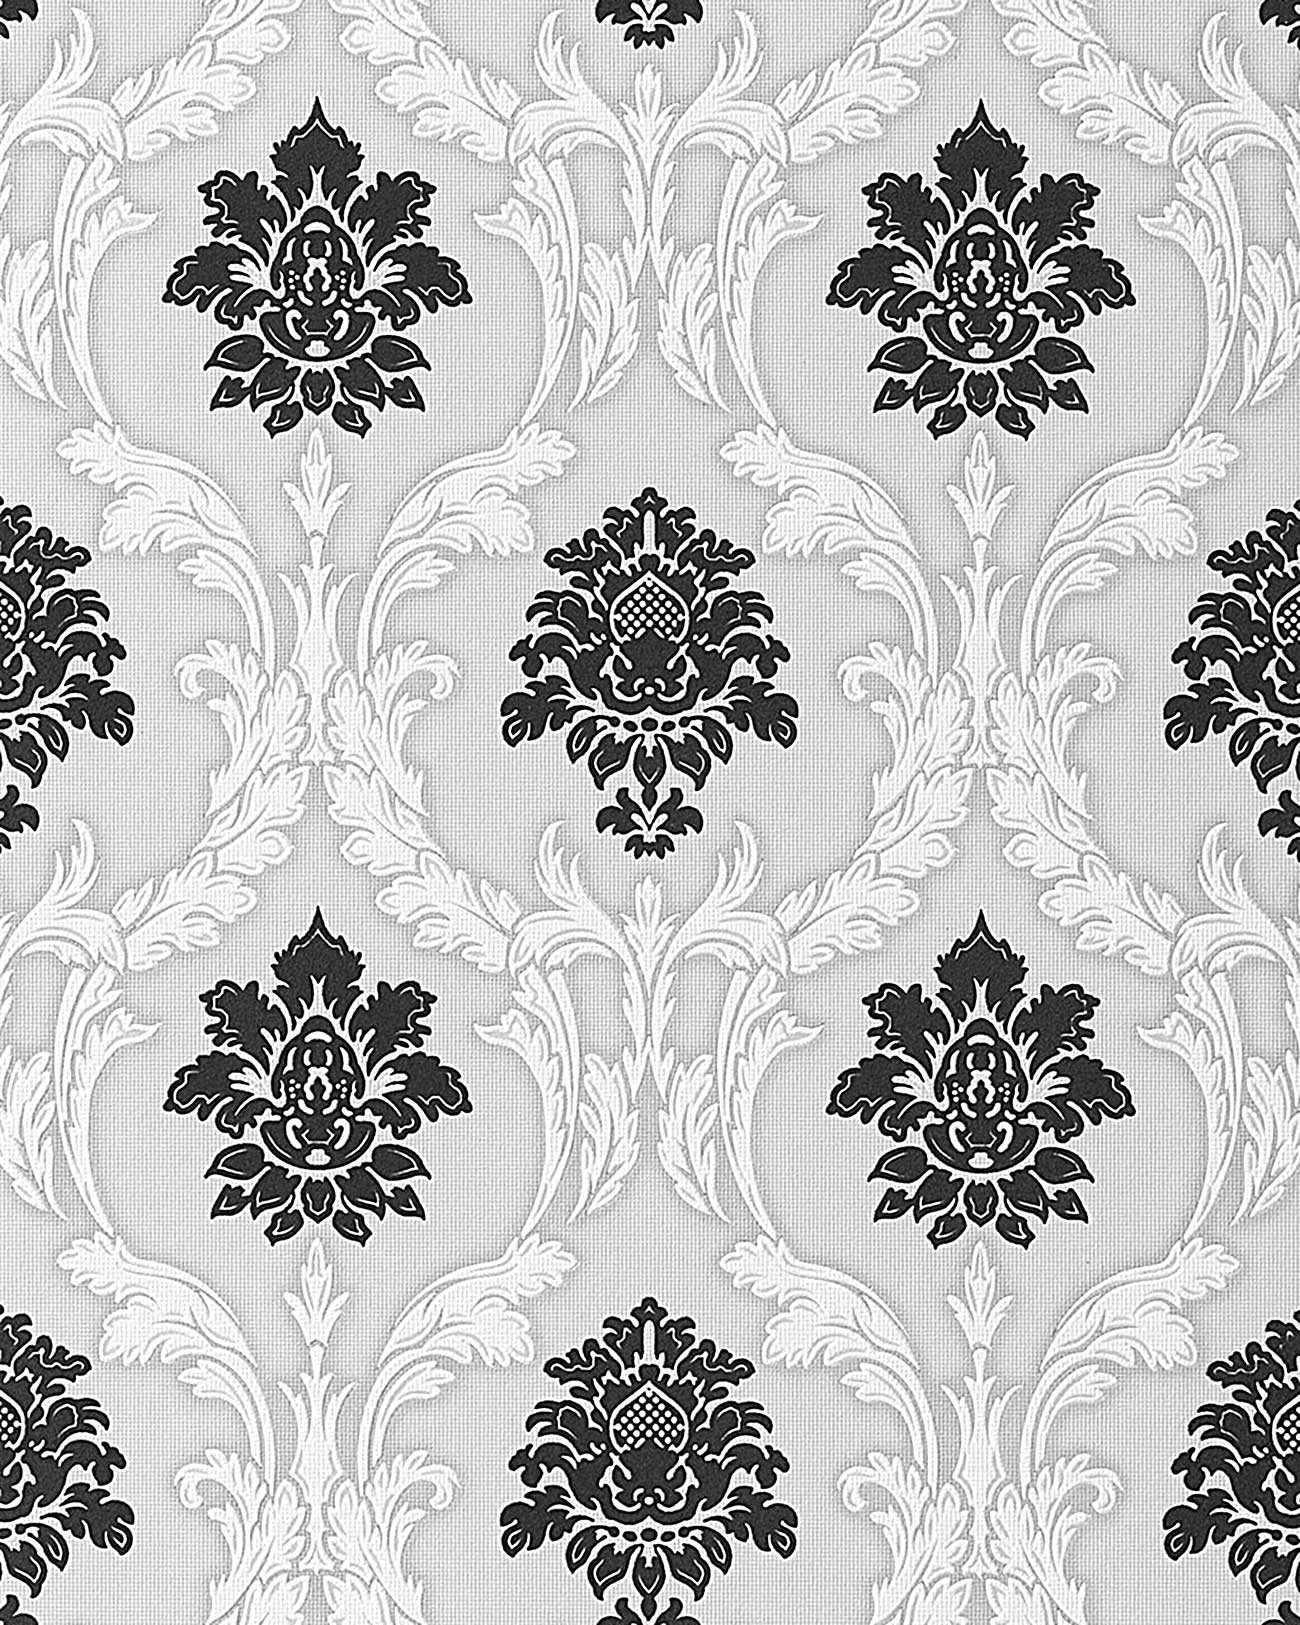 edem 052 20 tapete barock damask relief ornamente flockoptik schwarz wei grau ebay. Black Bedroom Furniture Sets. Home Design Ideas